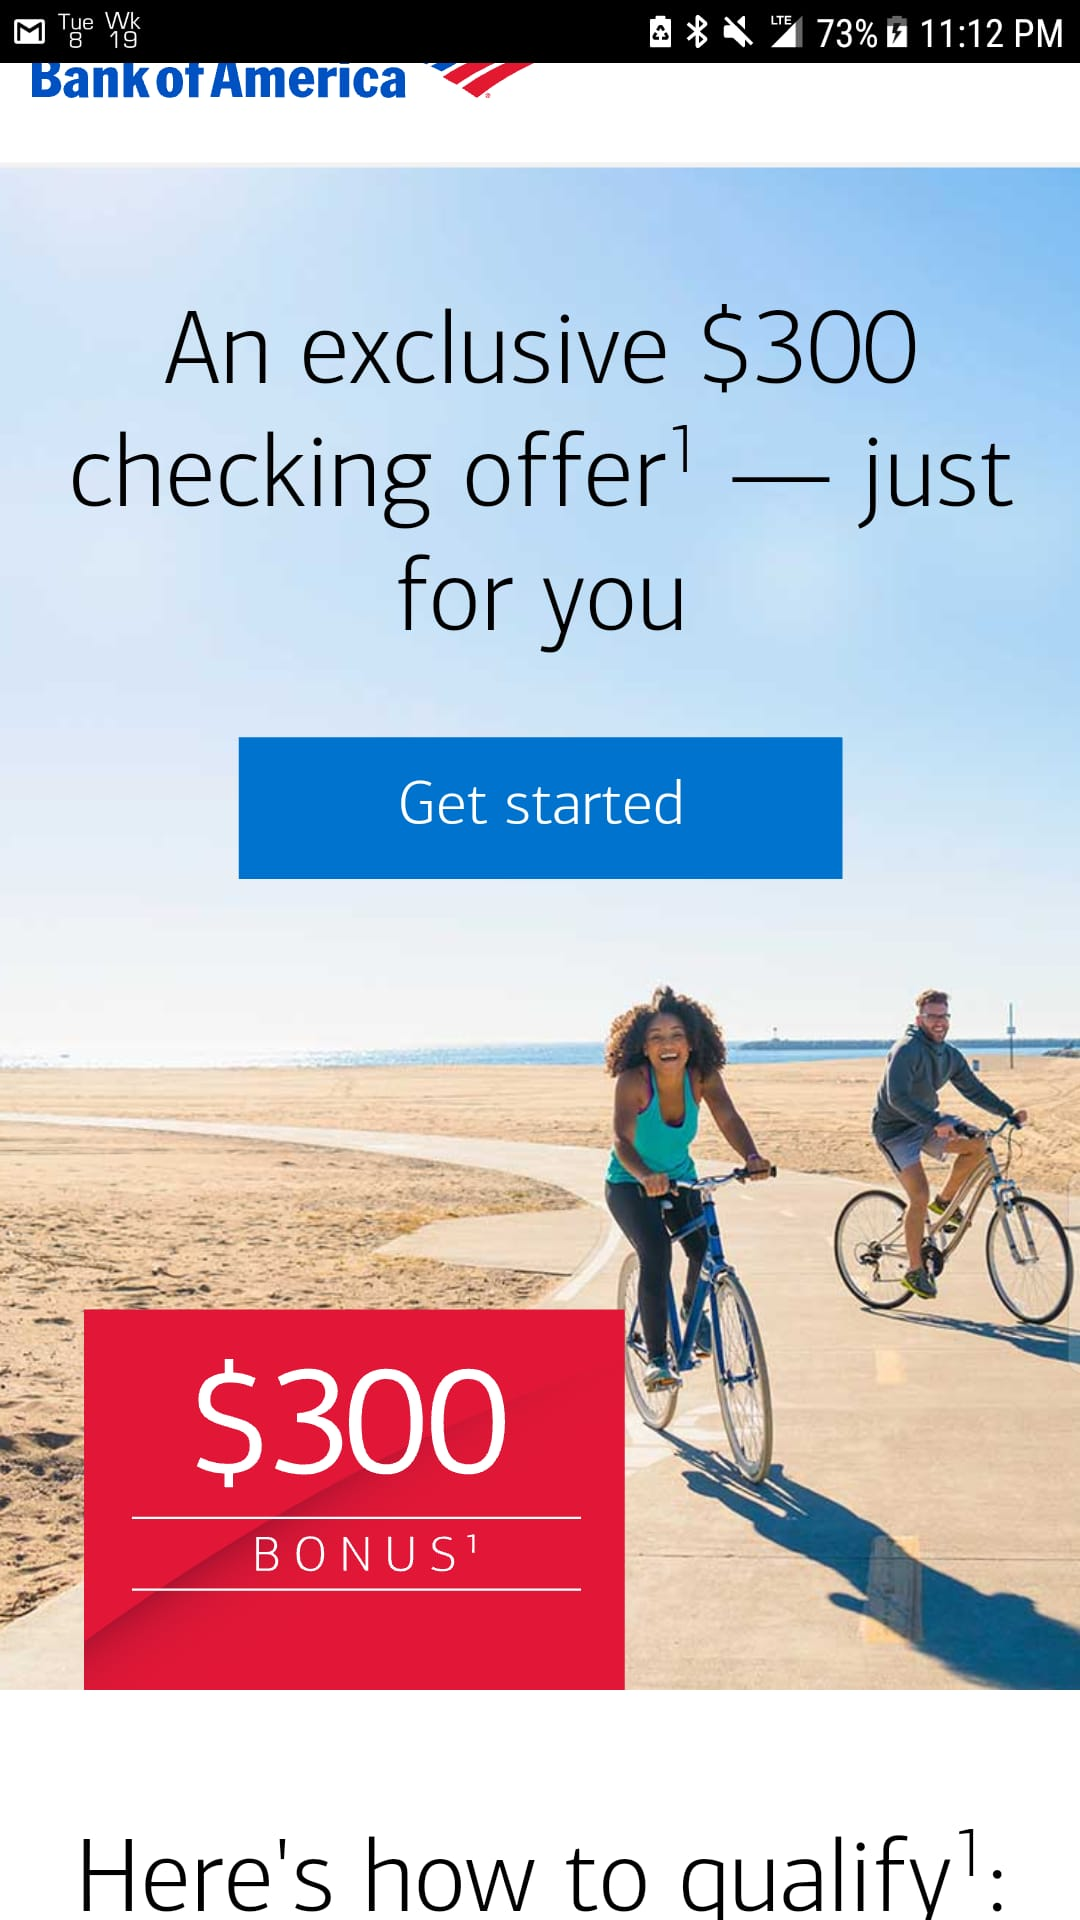 Bank of America exclusive checking account bonus offer for select BoA customers ymmv $300